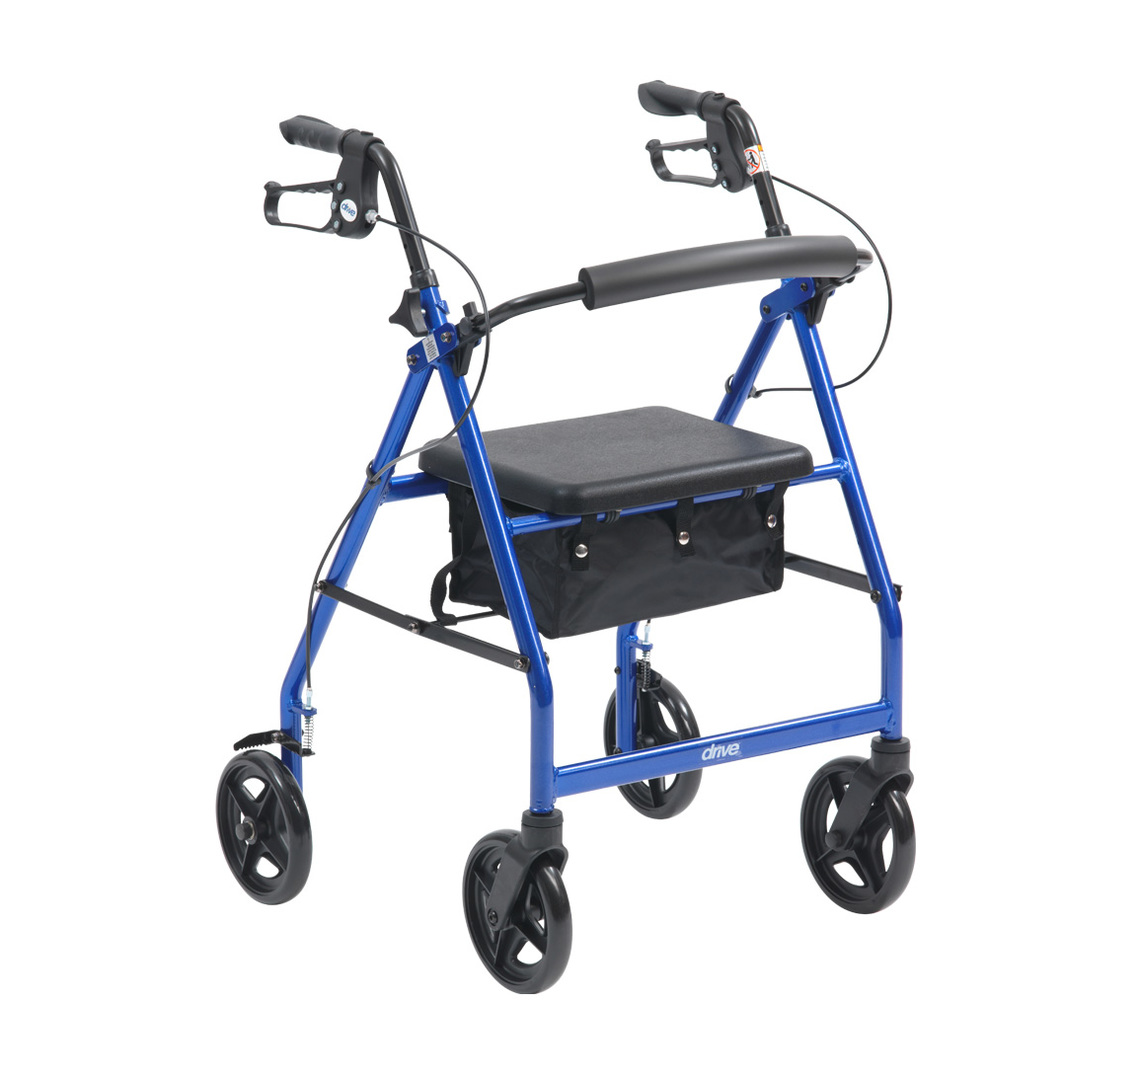 R8 Rollator by Drive Medical. FREE DELIVERY. On Promotional Offer, while stocks last.